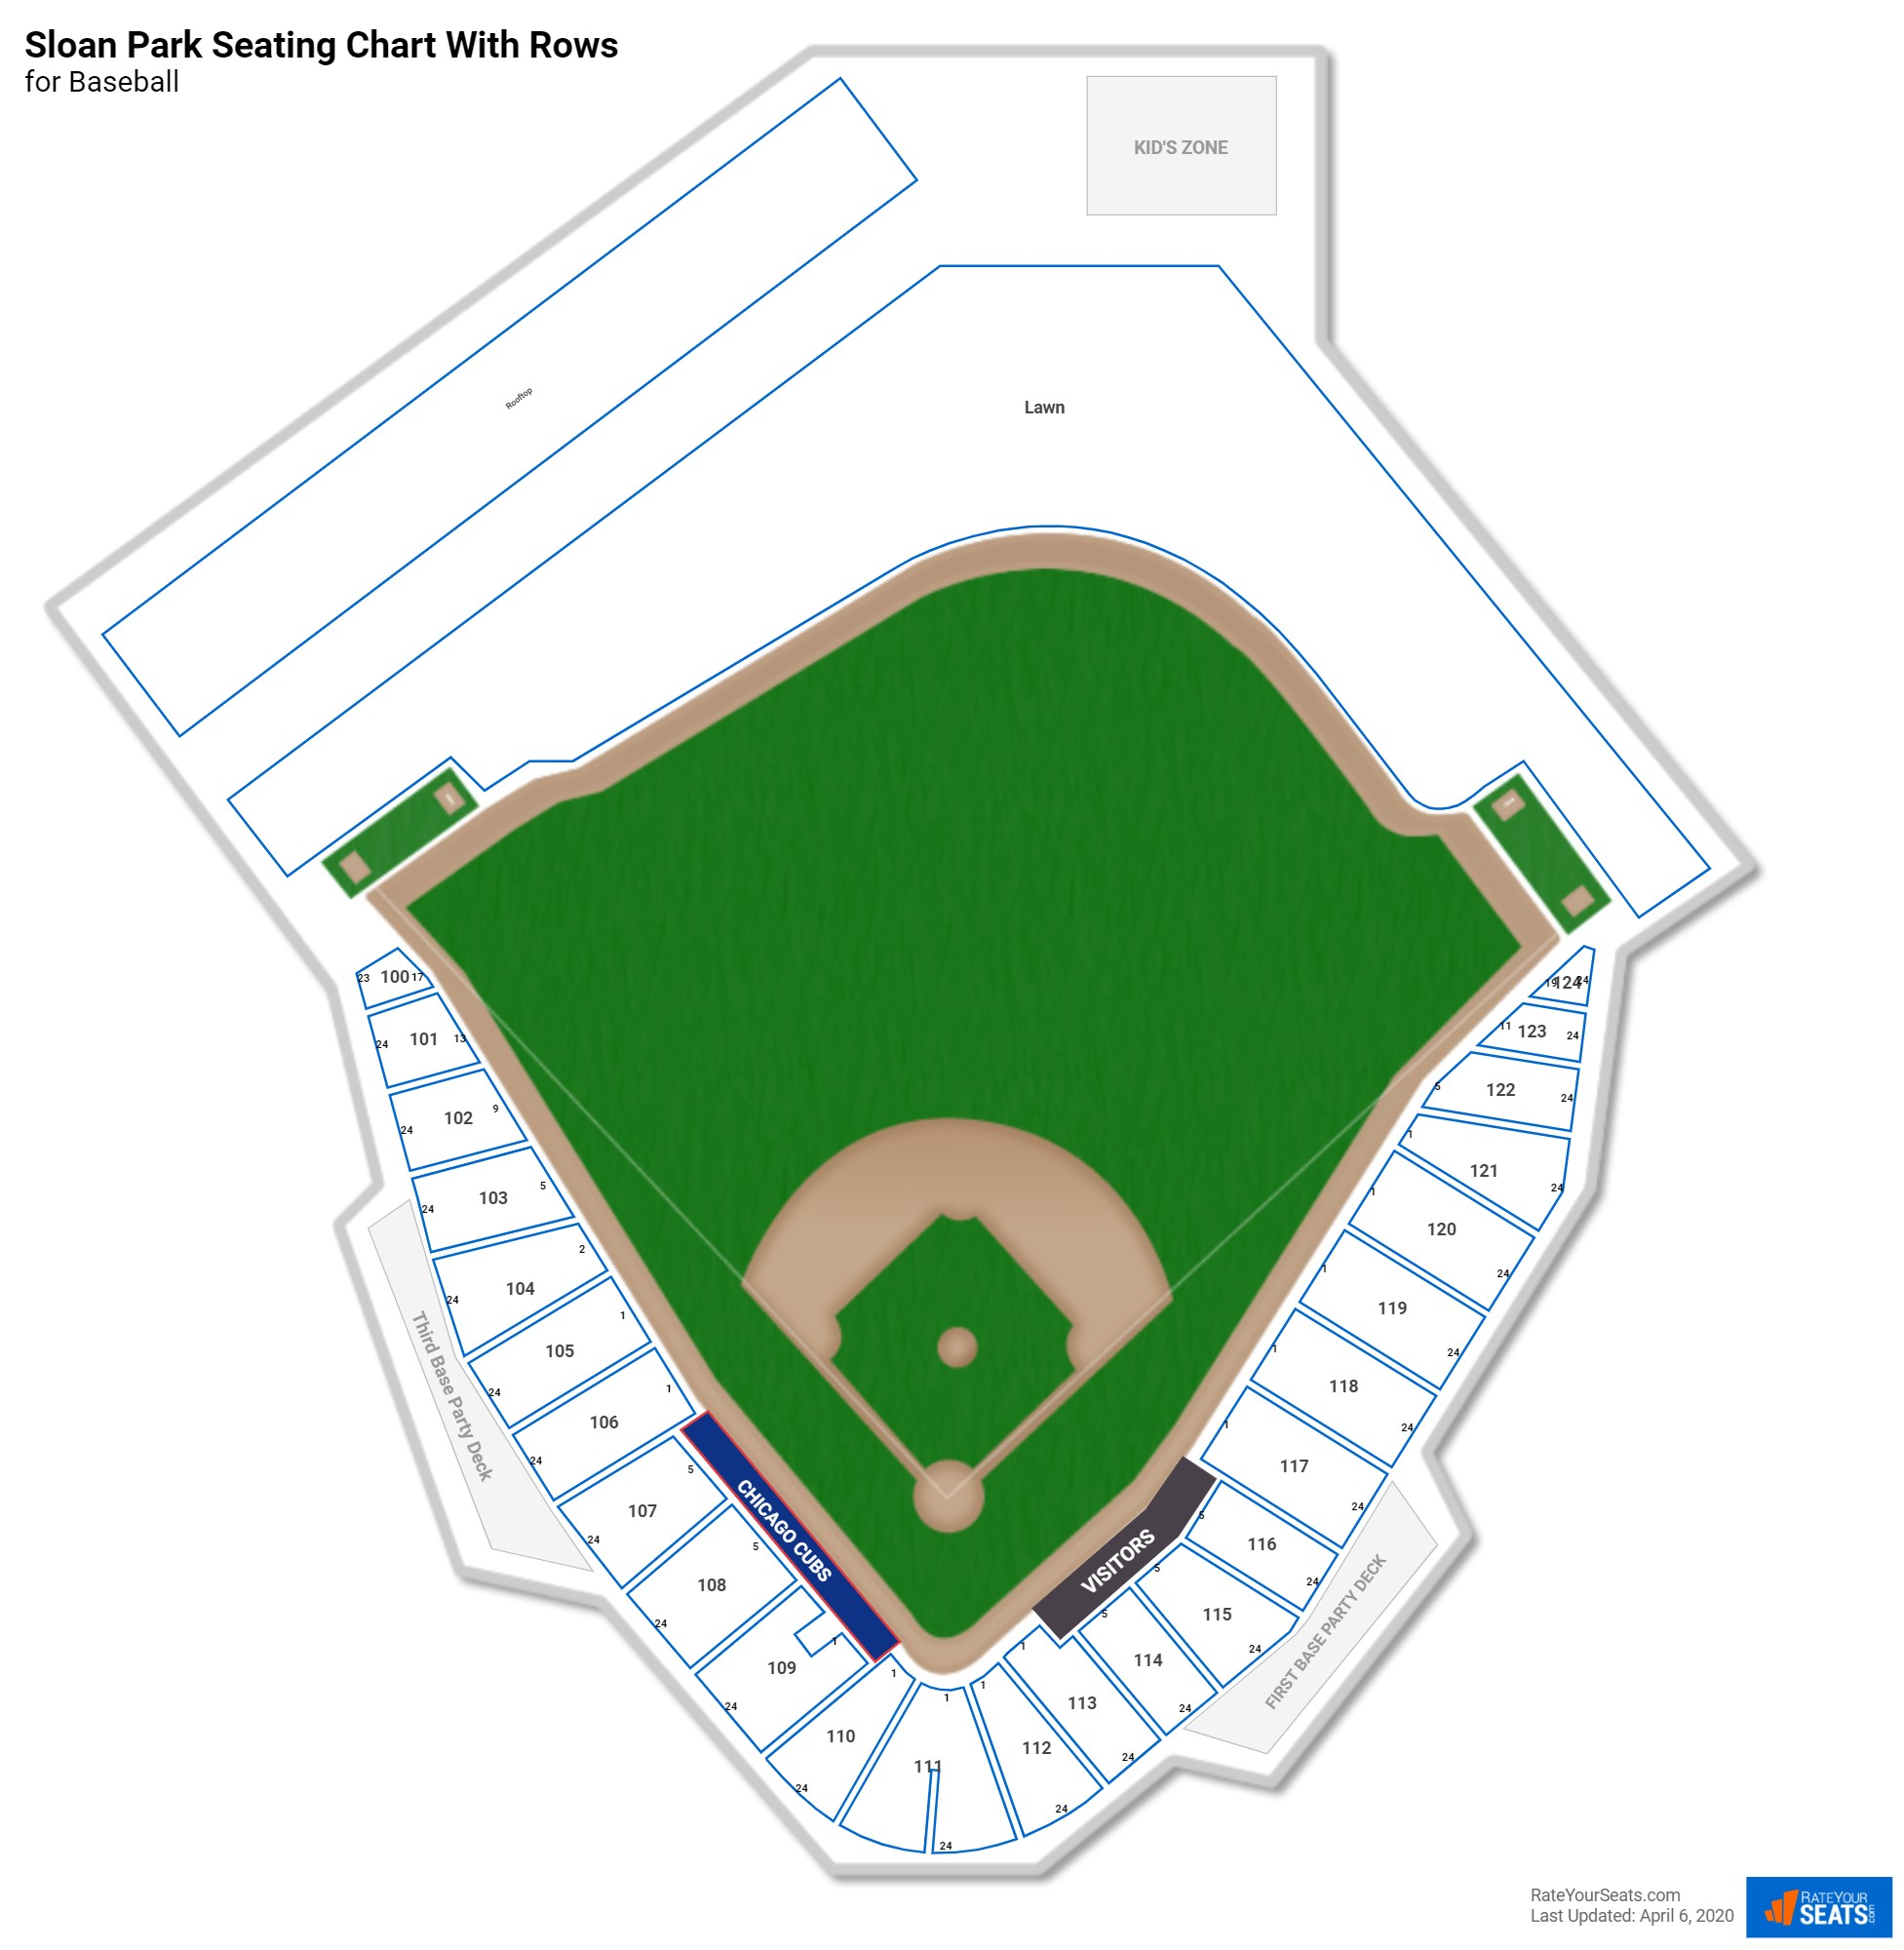 Sloan Park seating chart with rows